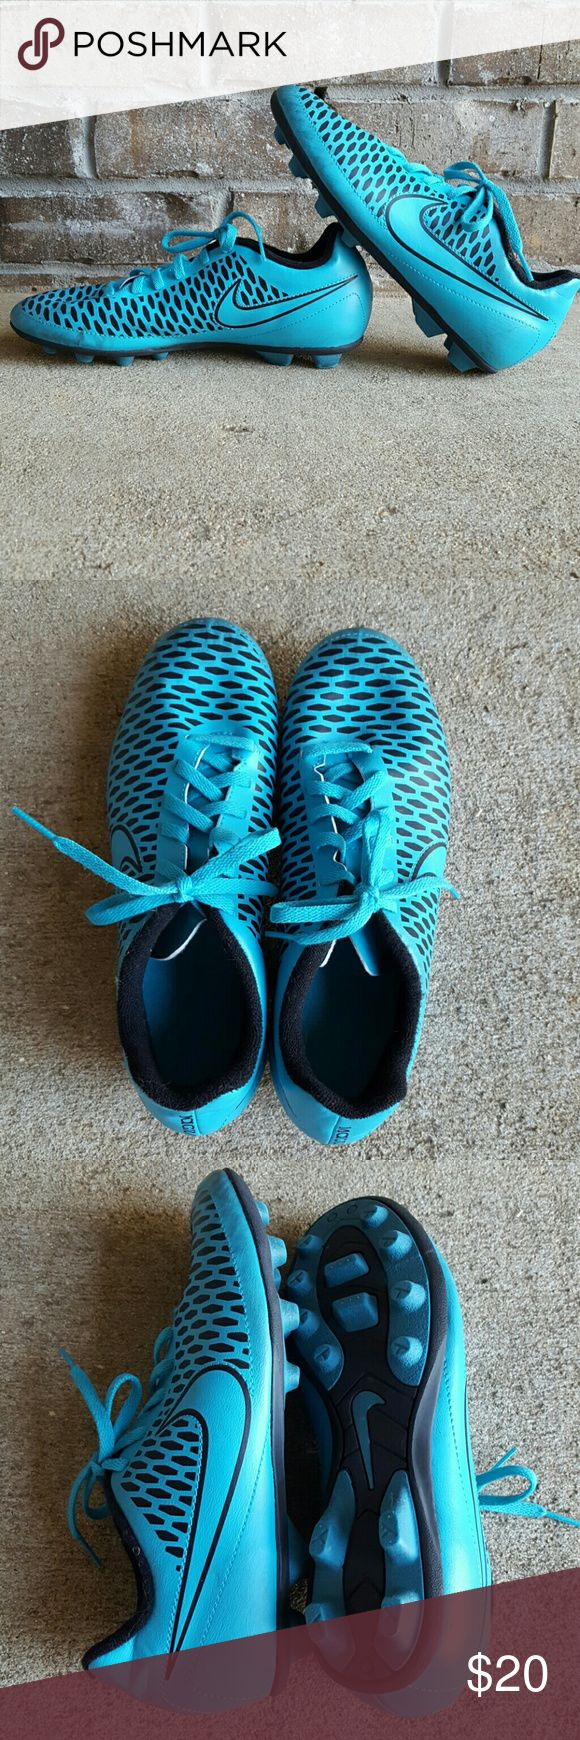 Nike Kids Soccer Cleats Size 5.5Y Nike Kids cleats size 5.5 Y Worn once at a training camp See my closet for amazing bundle ideas  30 percent off bundles Shoes Sneakers